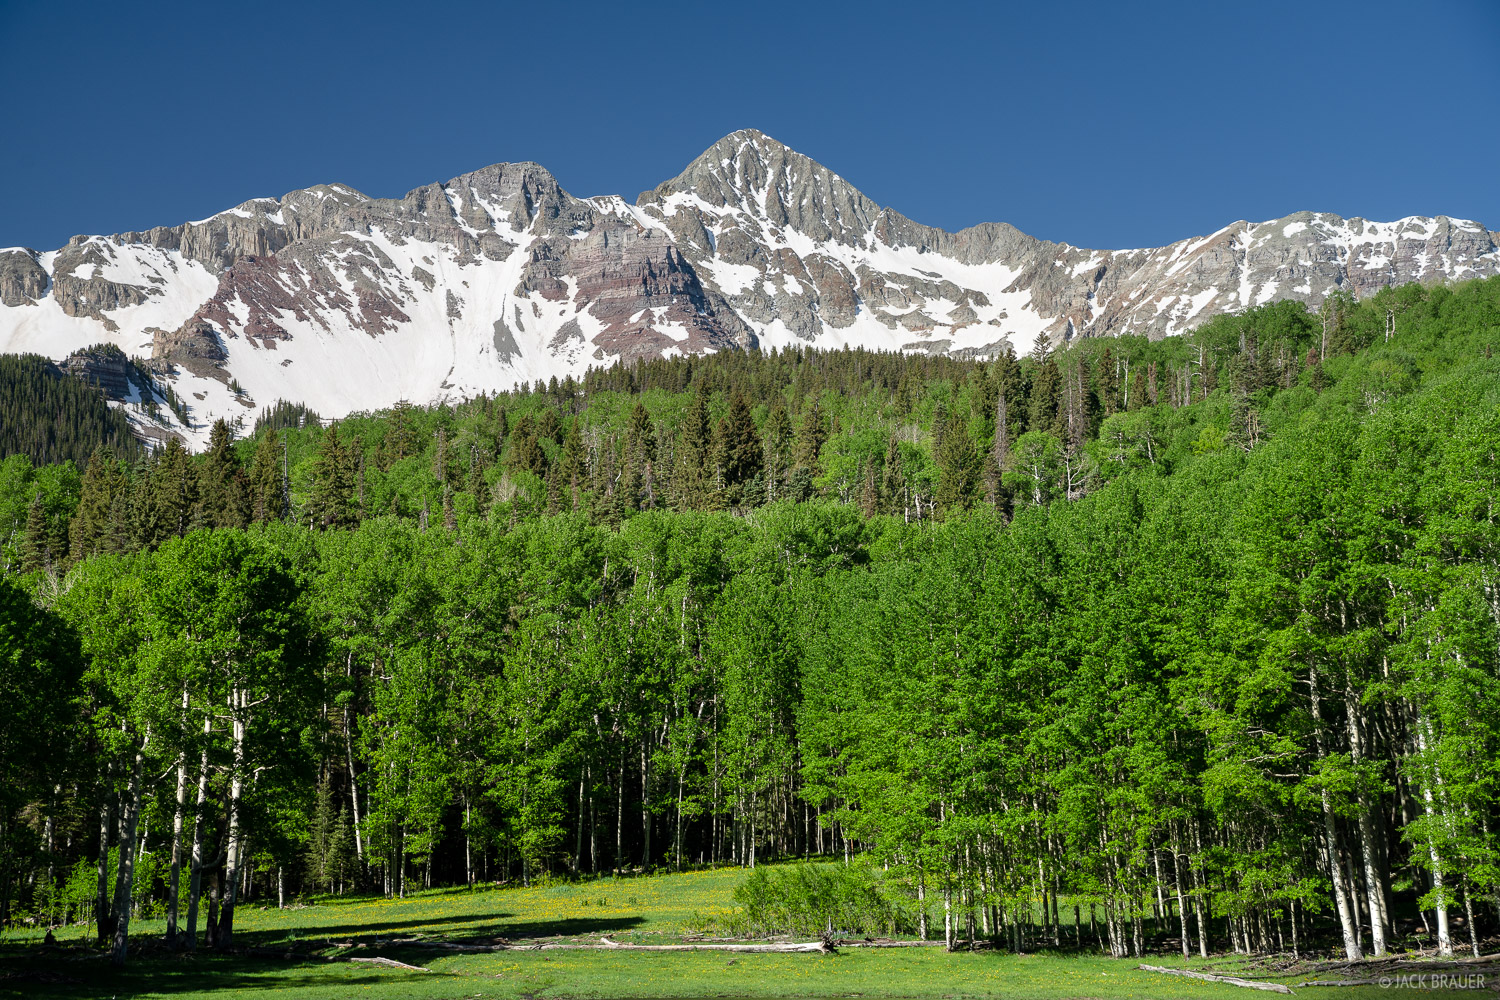 Wilson Peak (14,016 ft.) towers above a green forest of aspens.